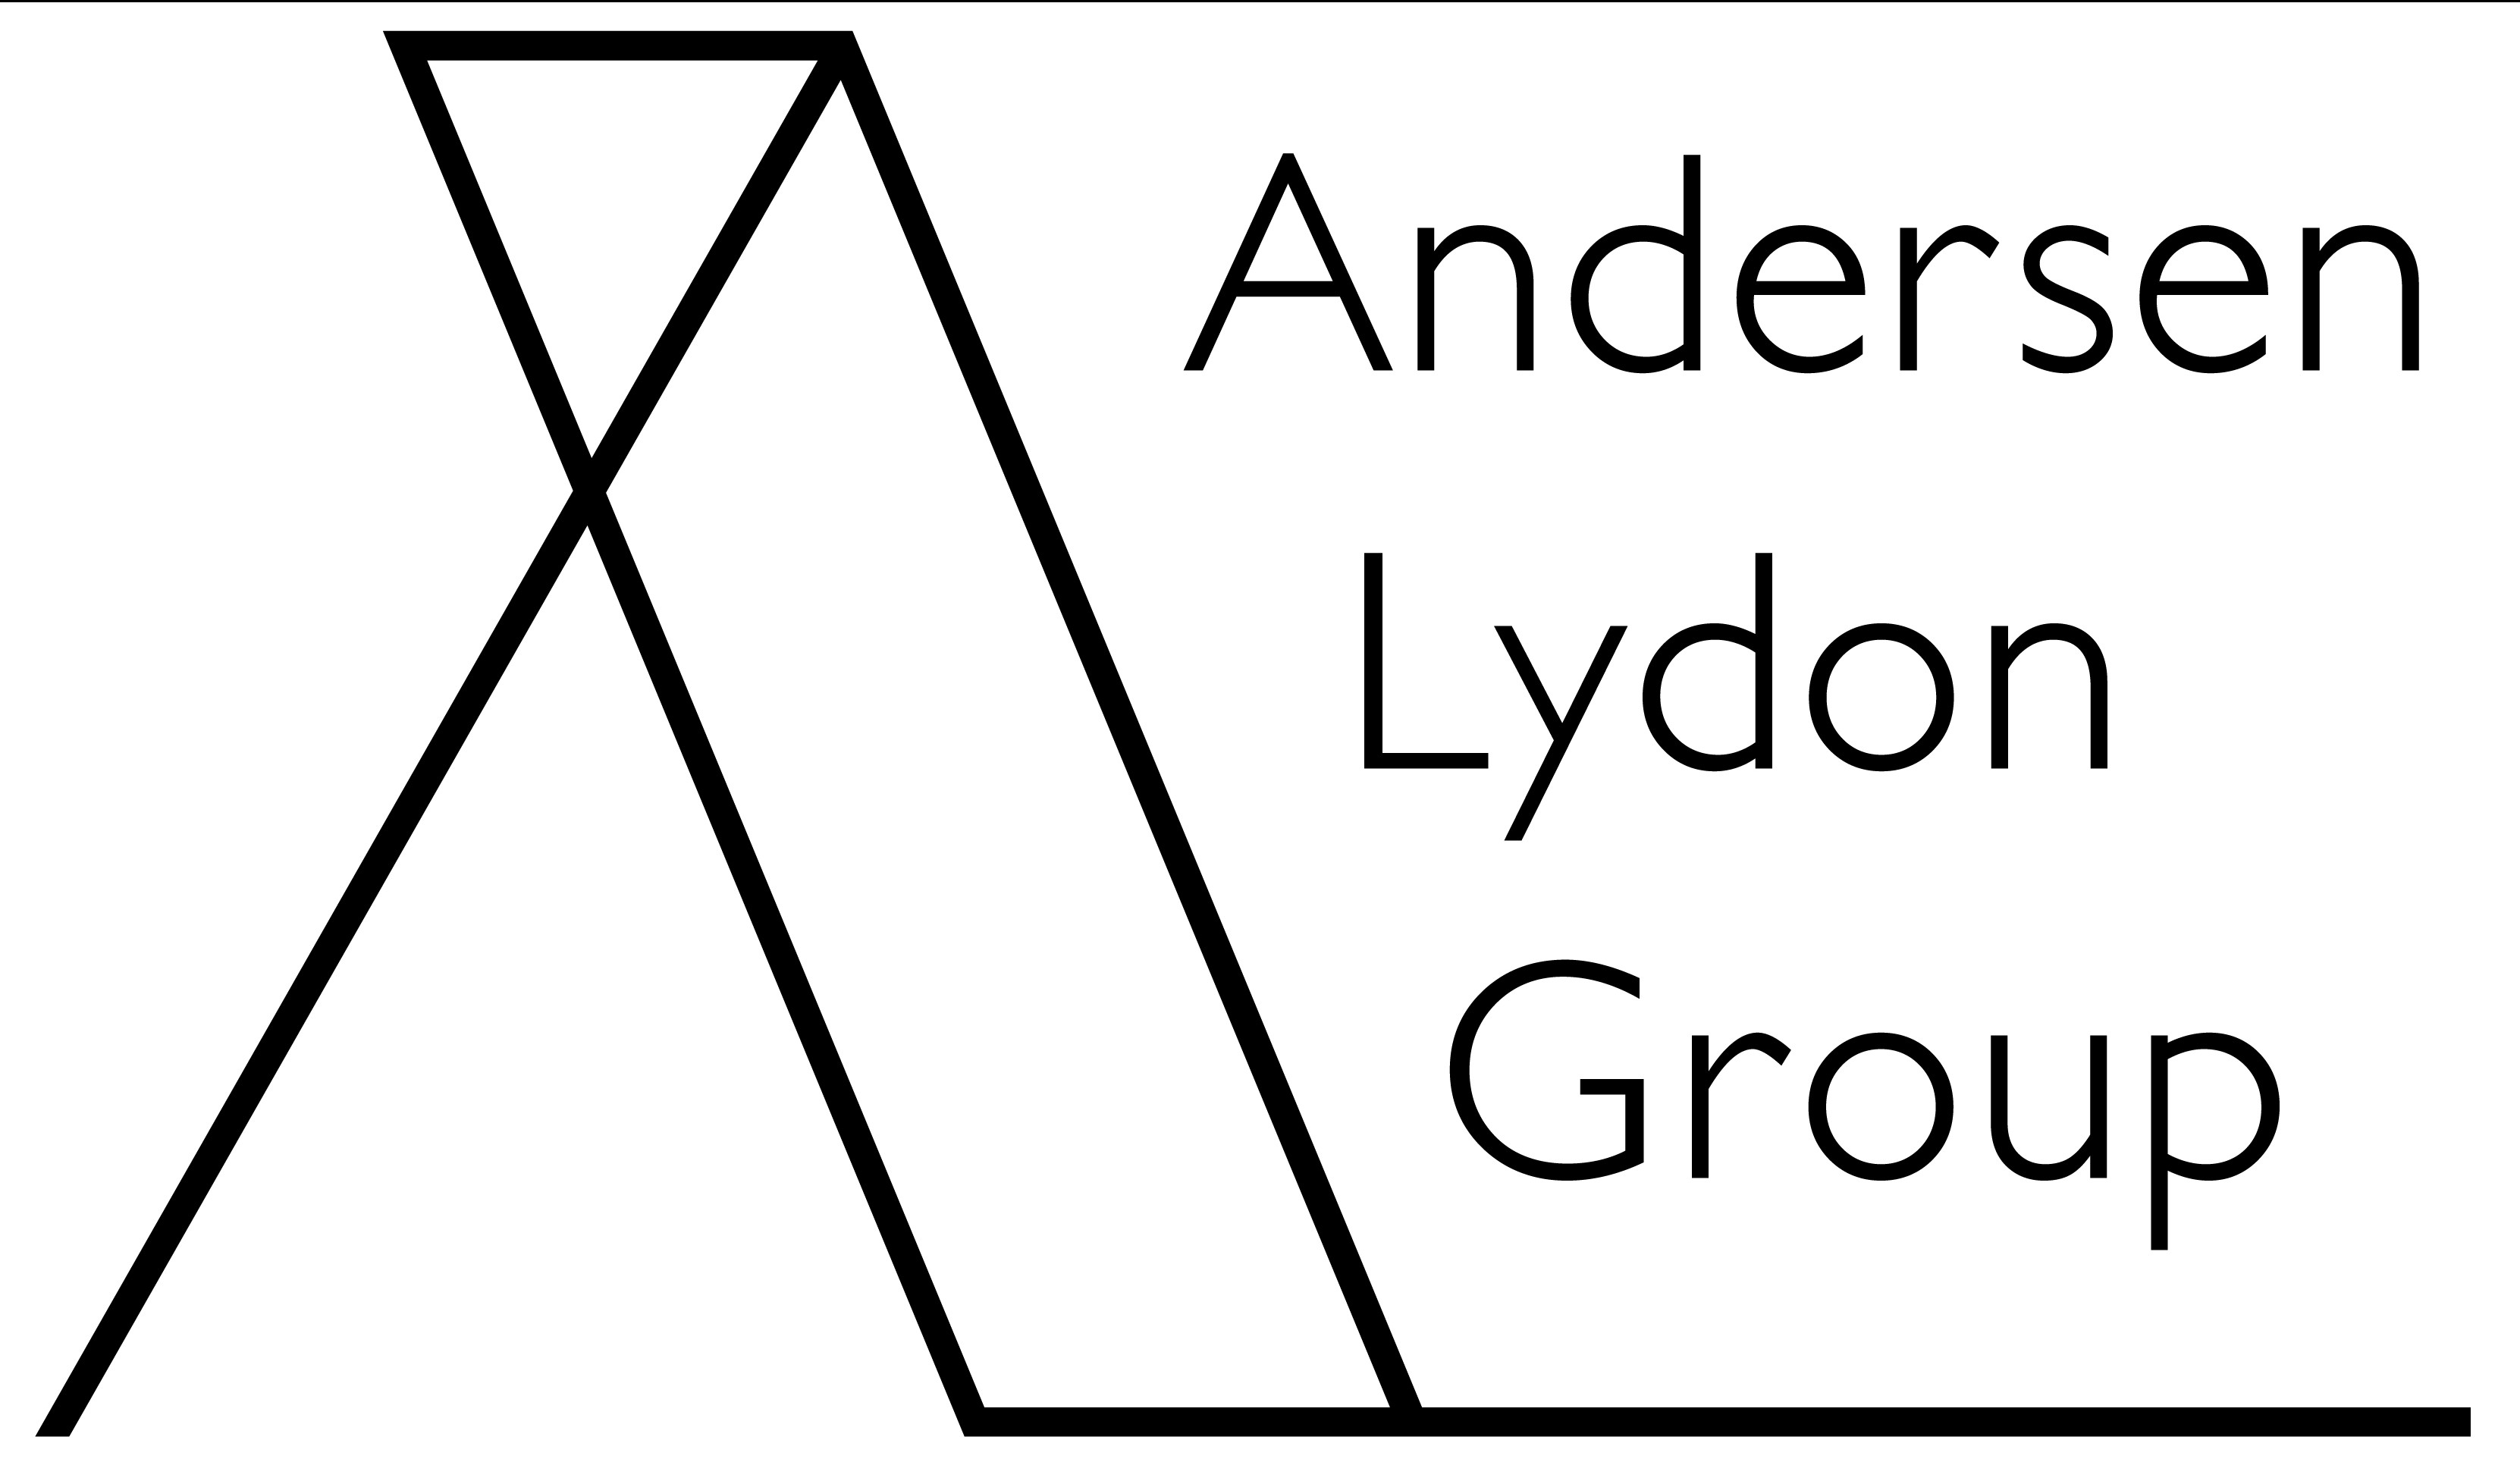 Compass, Andersen Lydon Group